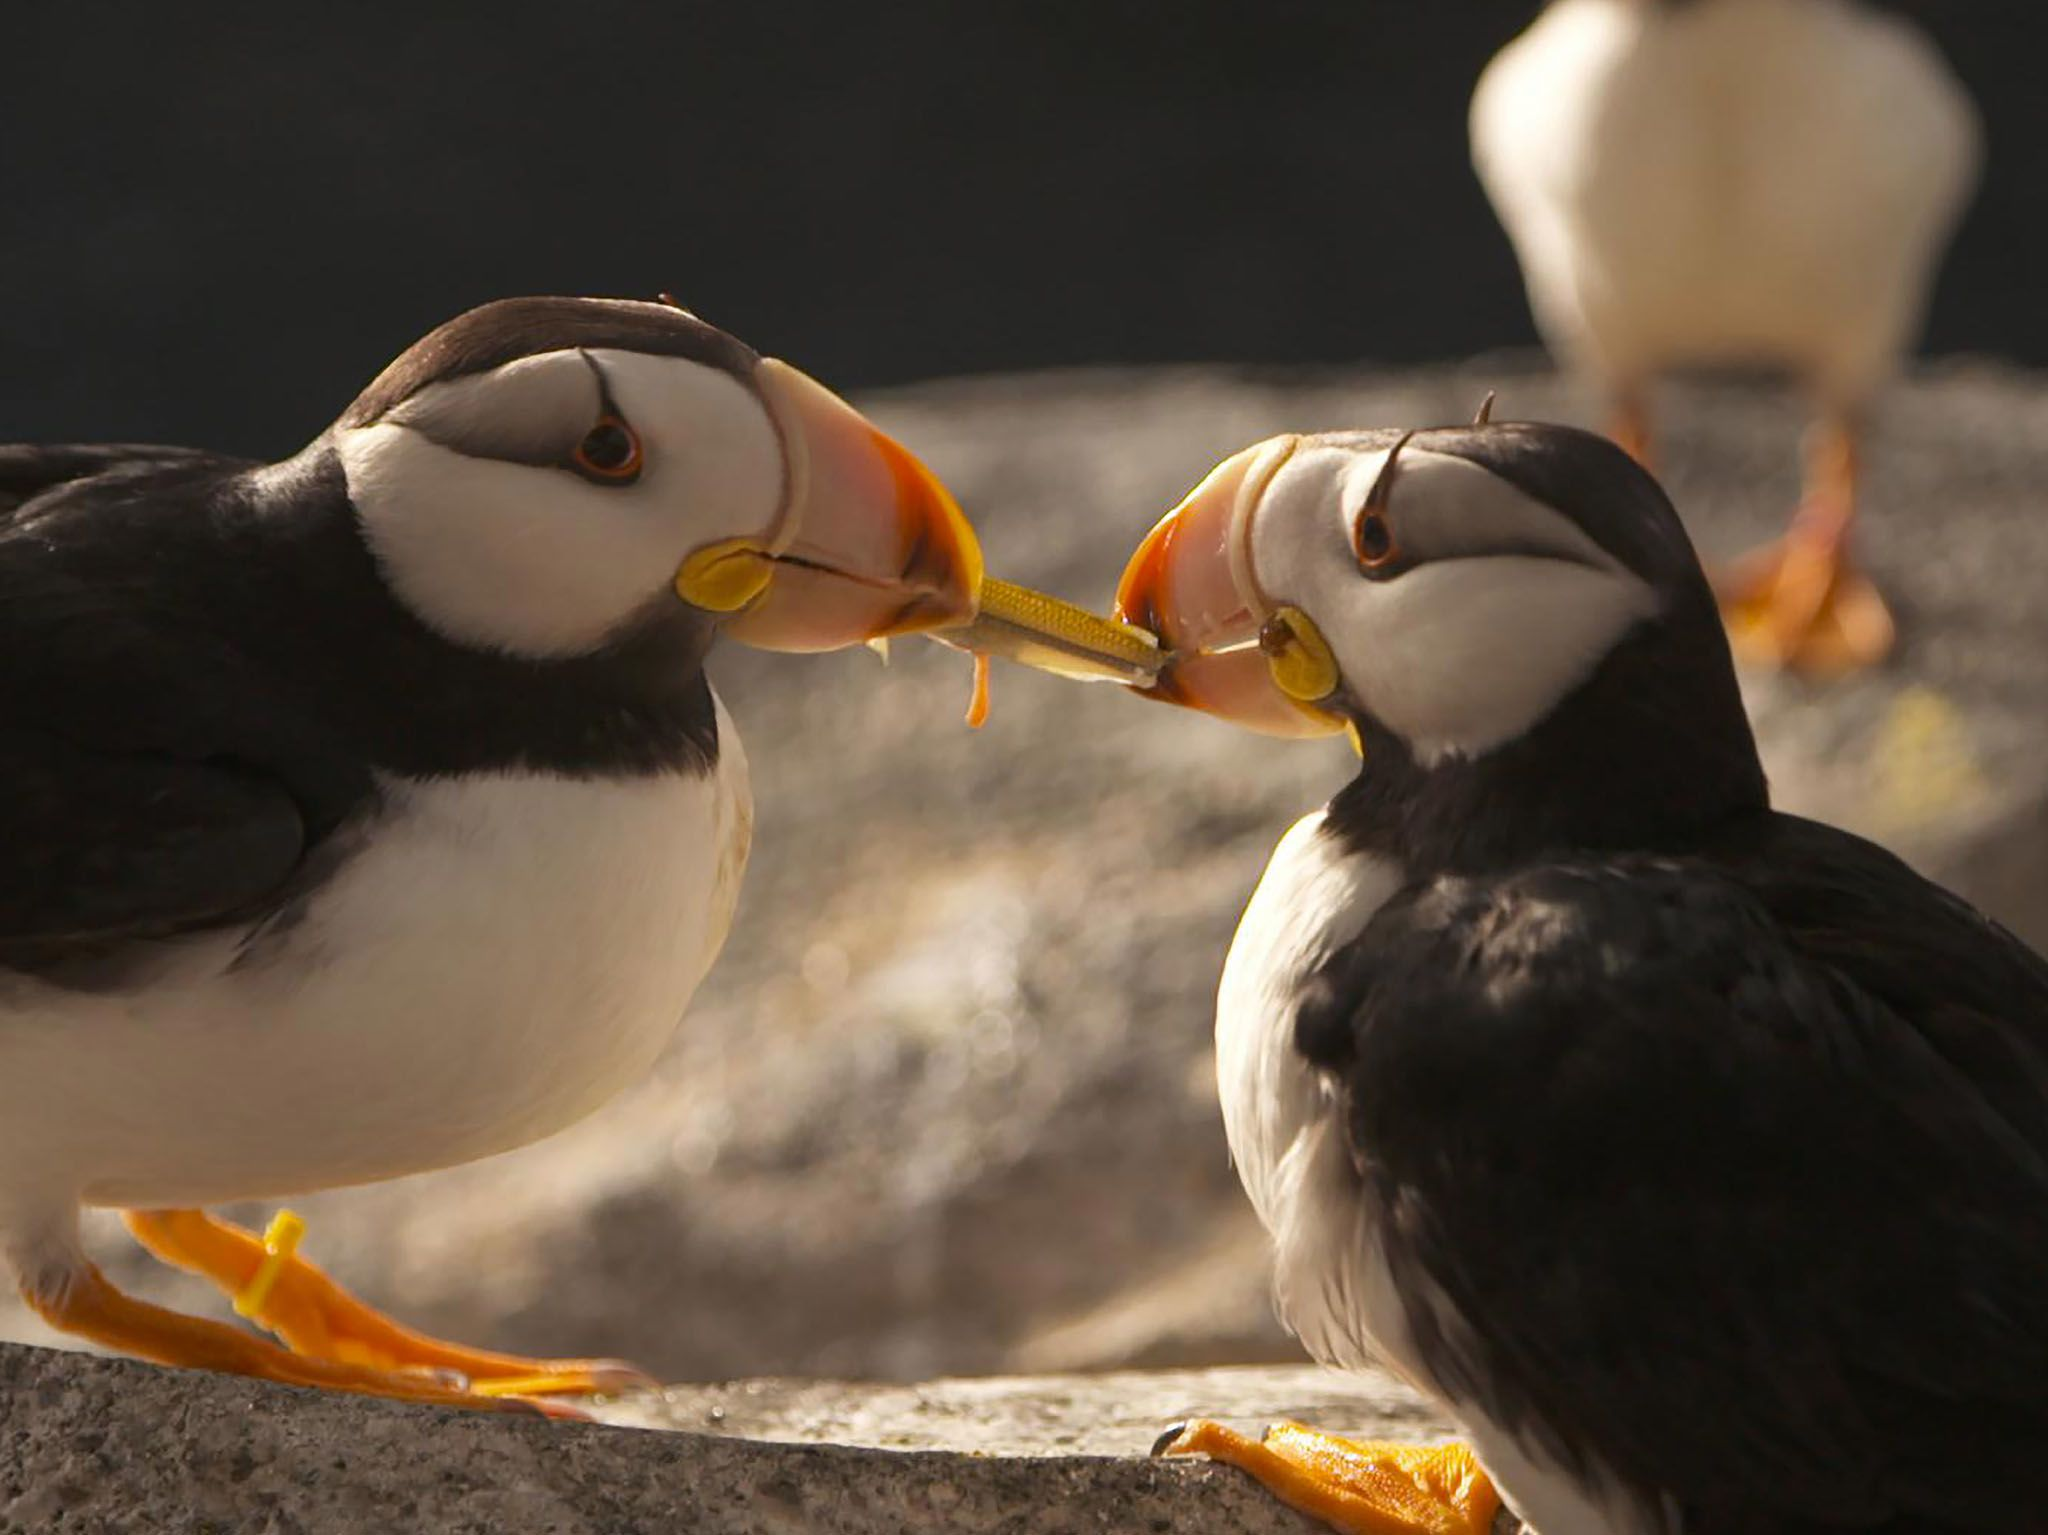 Two horned puffins fight over a fish in the Alaska SeaLife Center. This image is from Alaska:... [Photo of the day - March 2021]